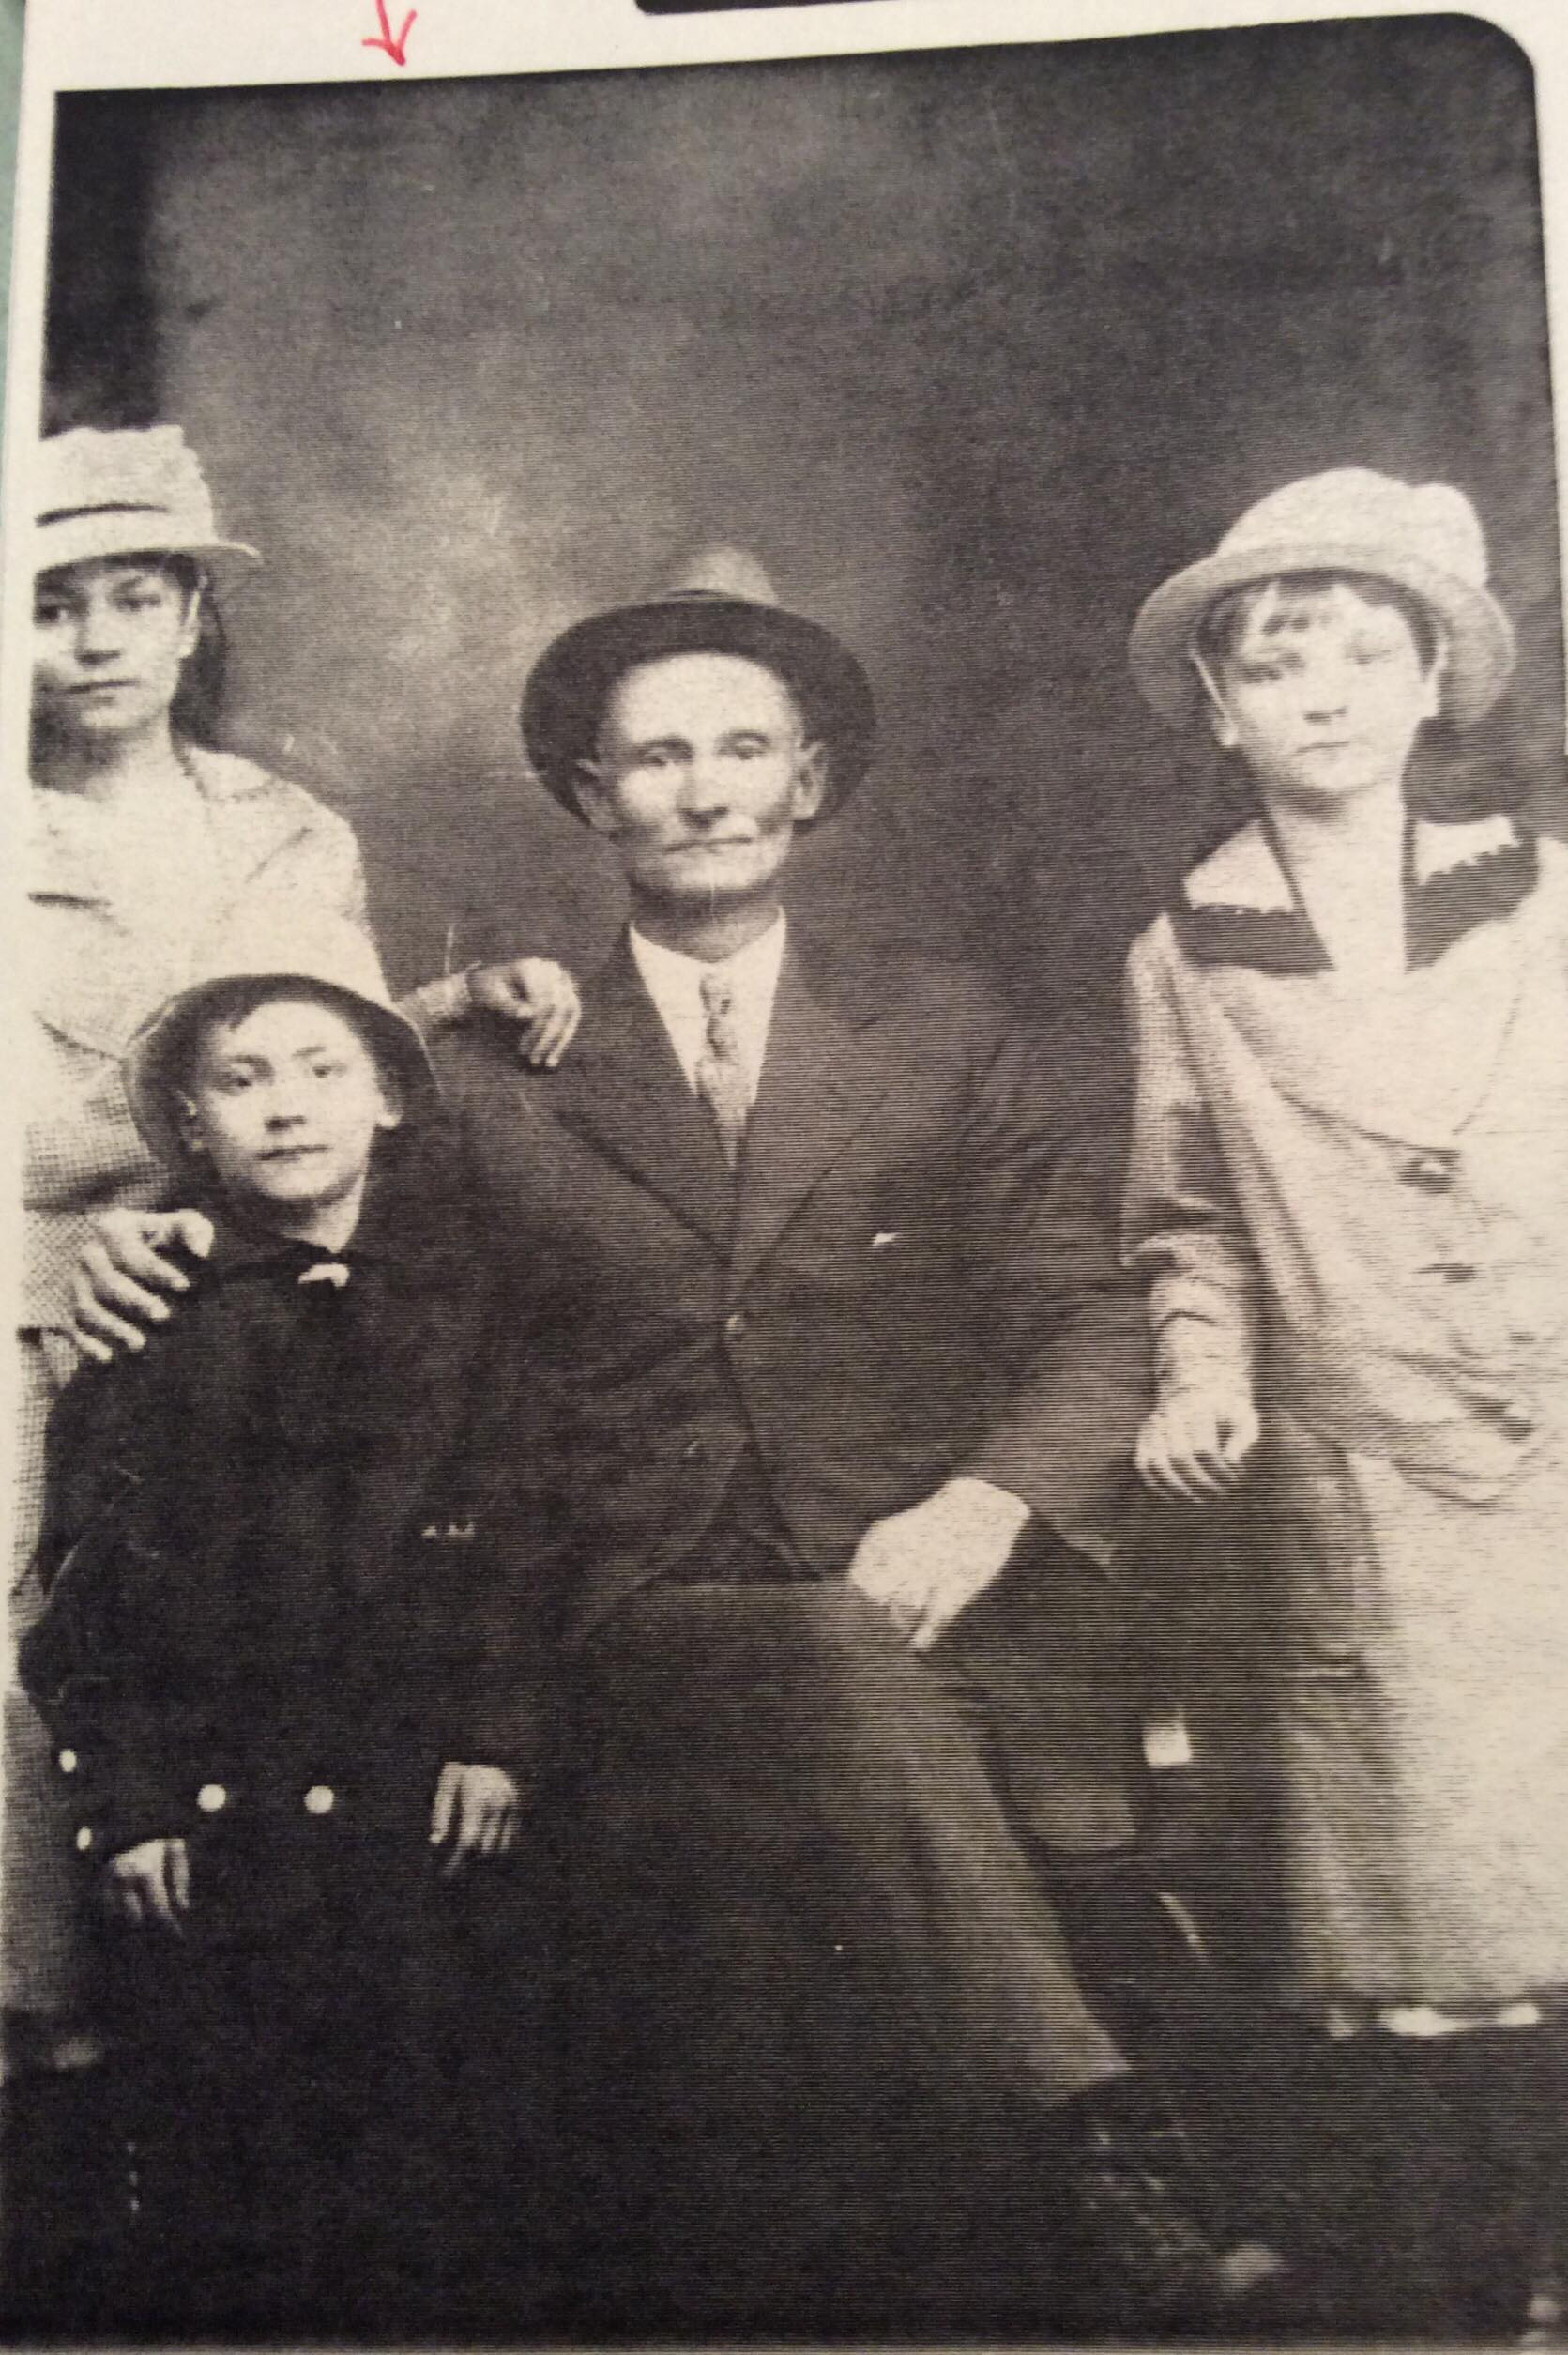 Thelma (right) with her siblings, Mildred and Robert, and her father, James. (abt. 1916)